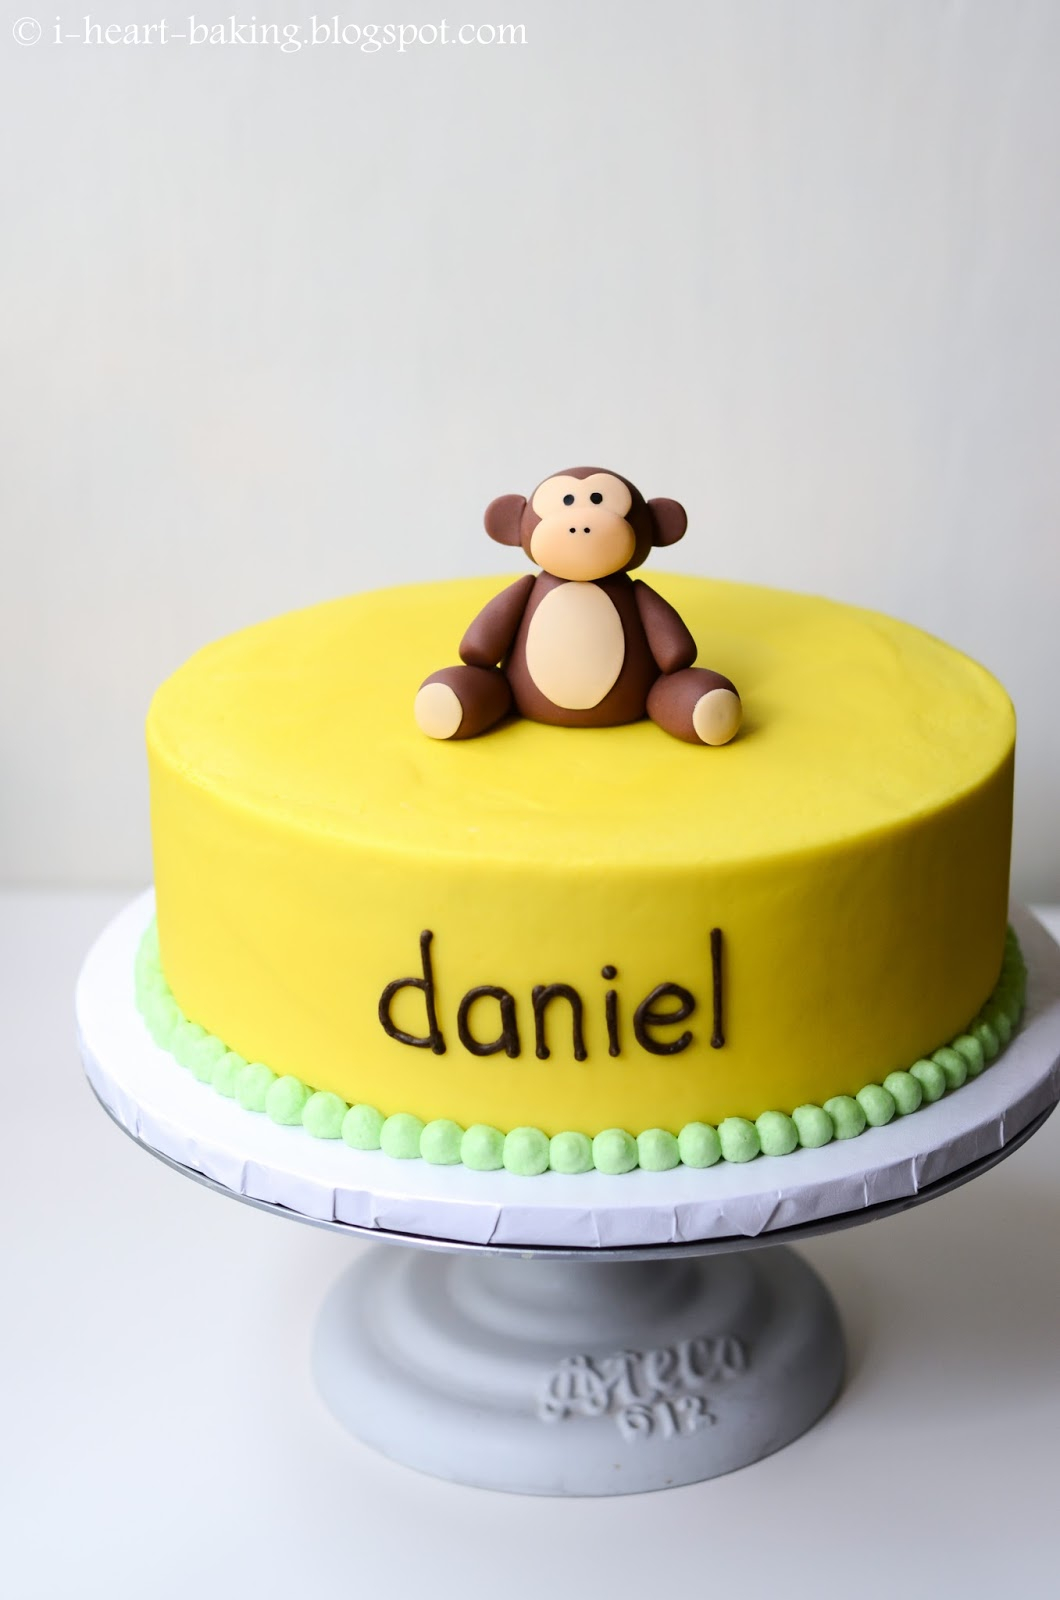 Monkey Birthday Cake I Heart Baking Banana Cream Birthday Cake With Handmade Fondant